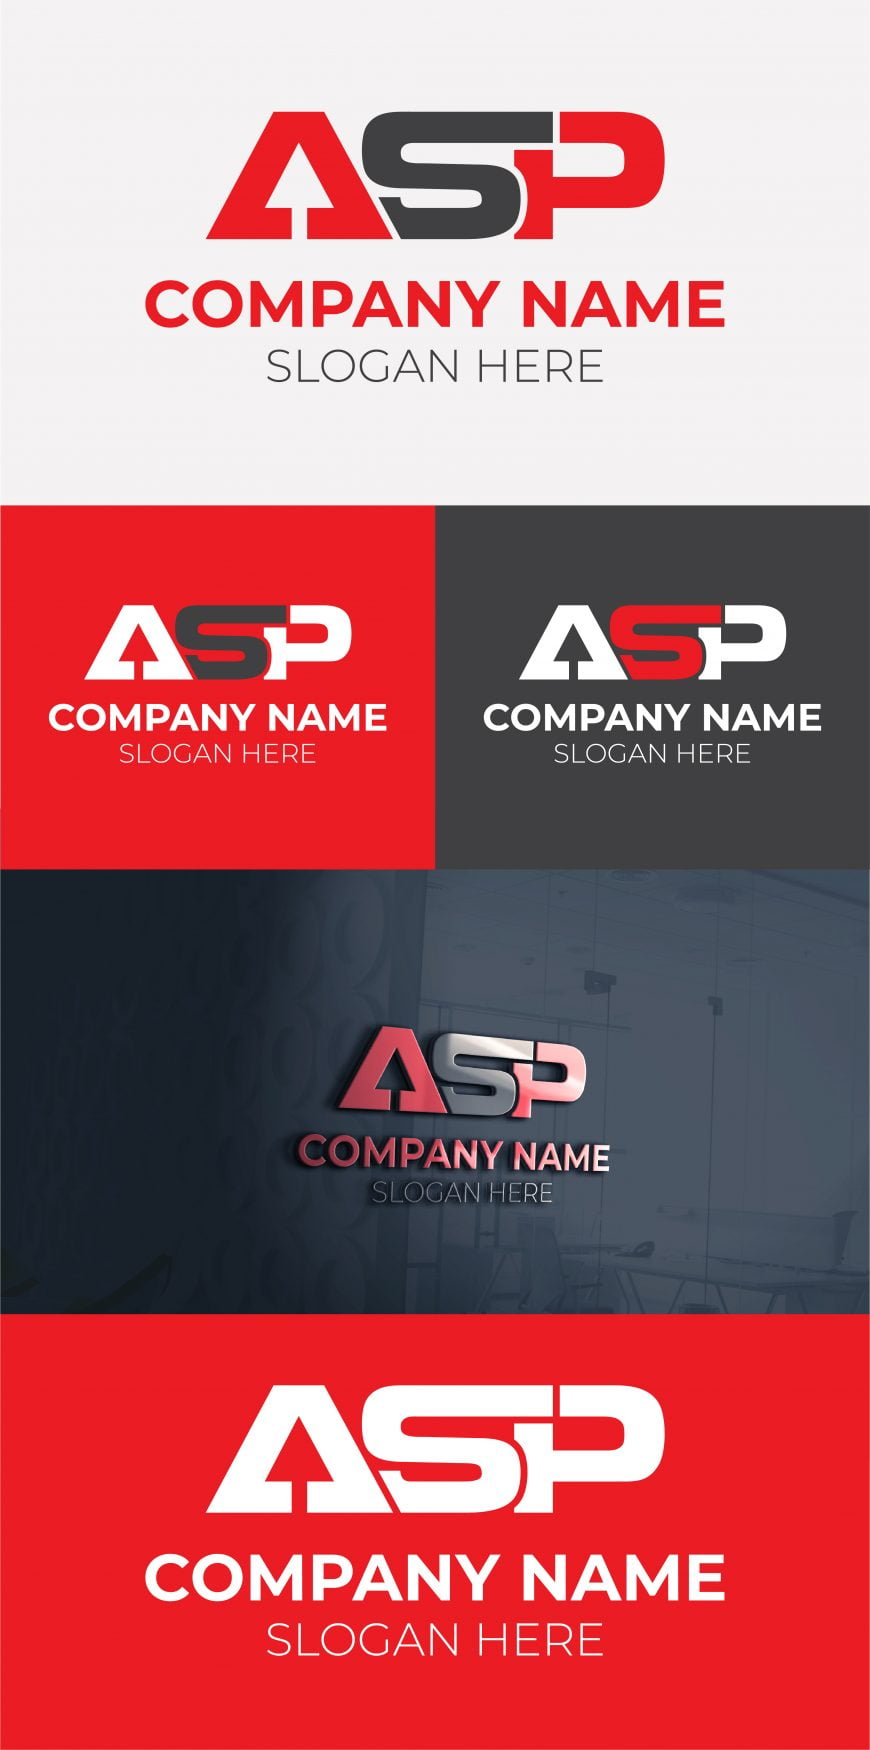 ASP-LETTER-LOGO-FREE-TEMPLATE-scaled